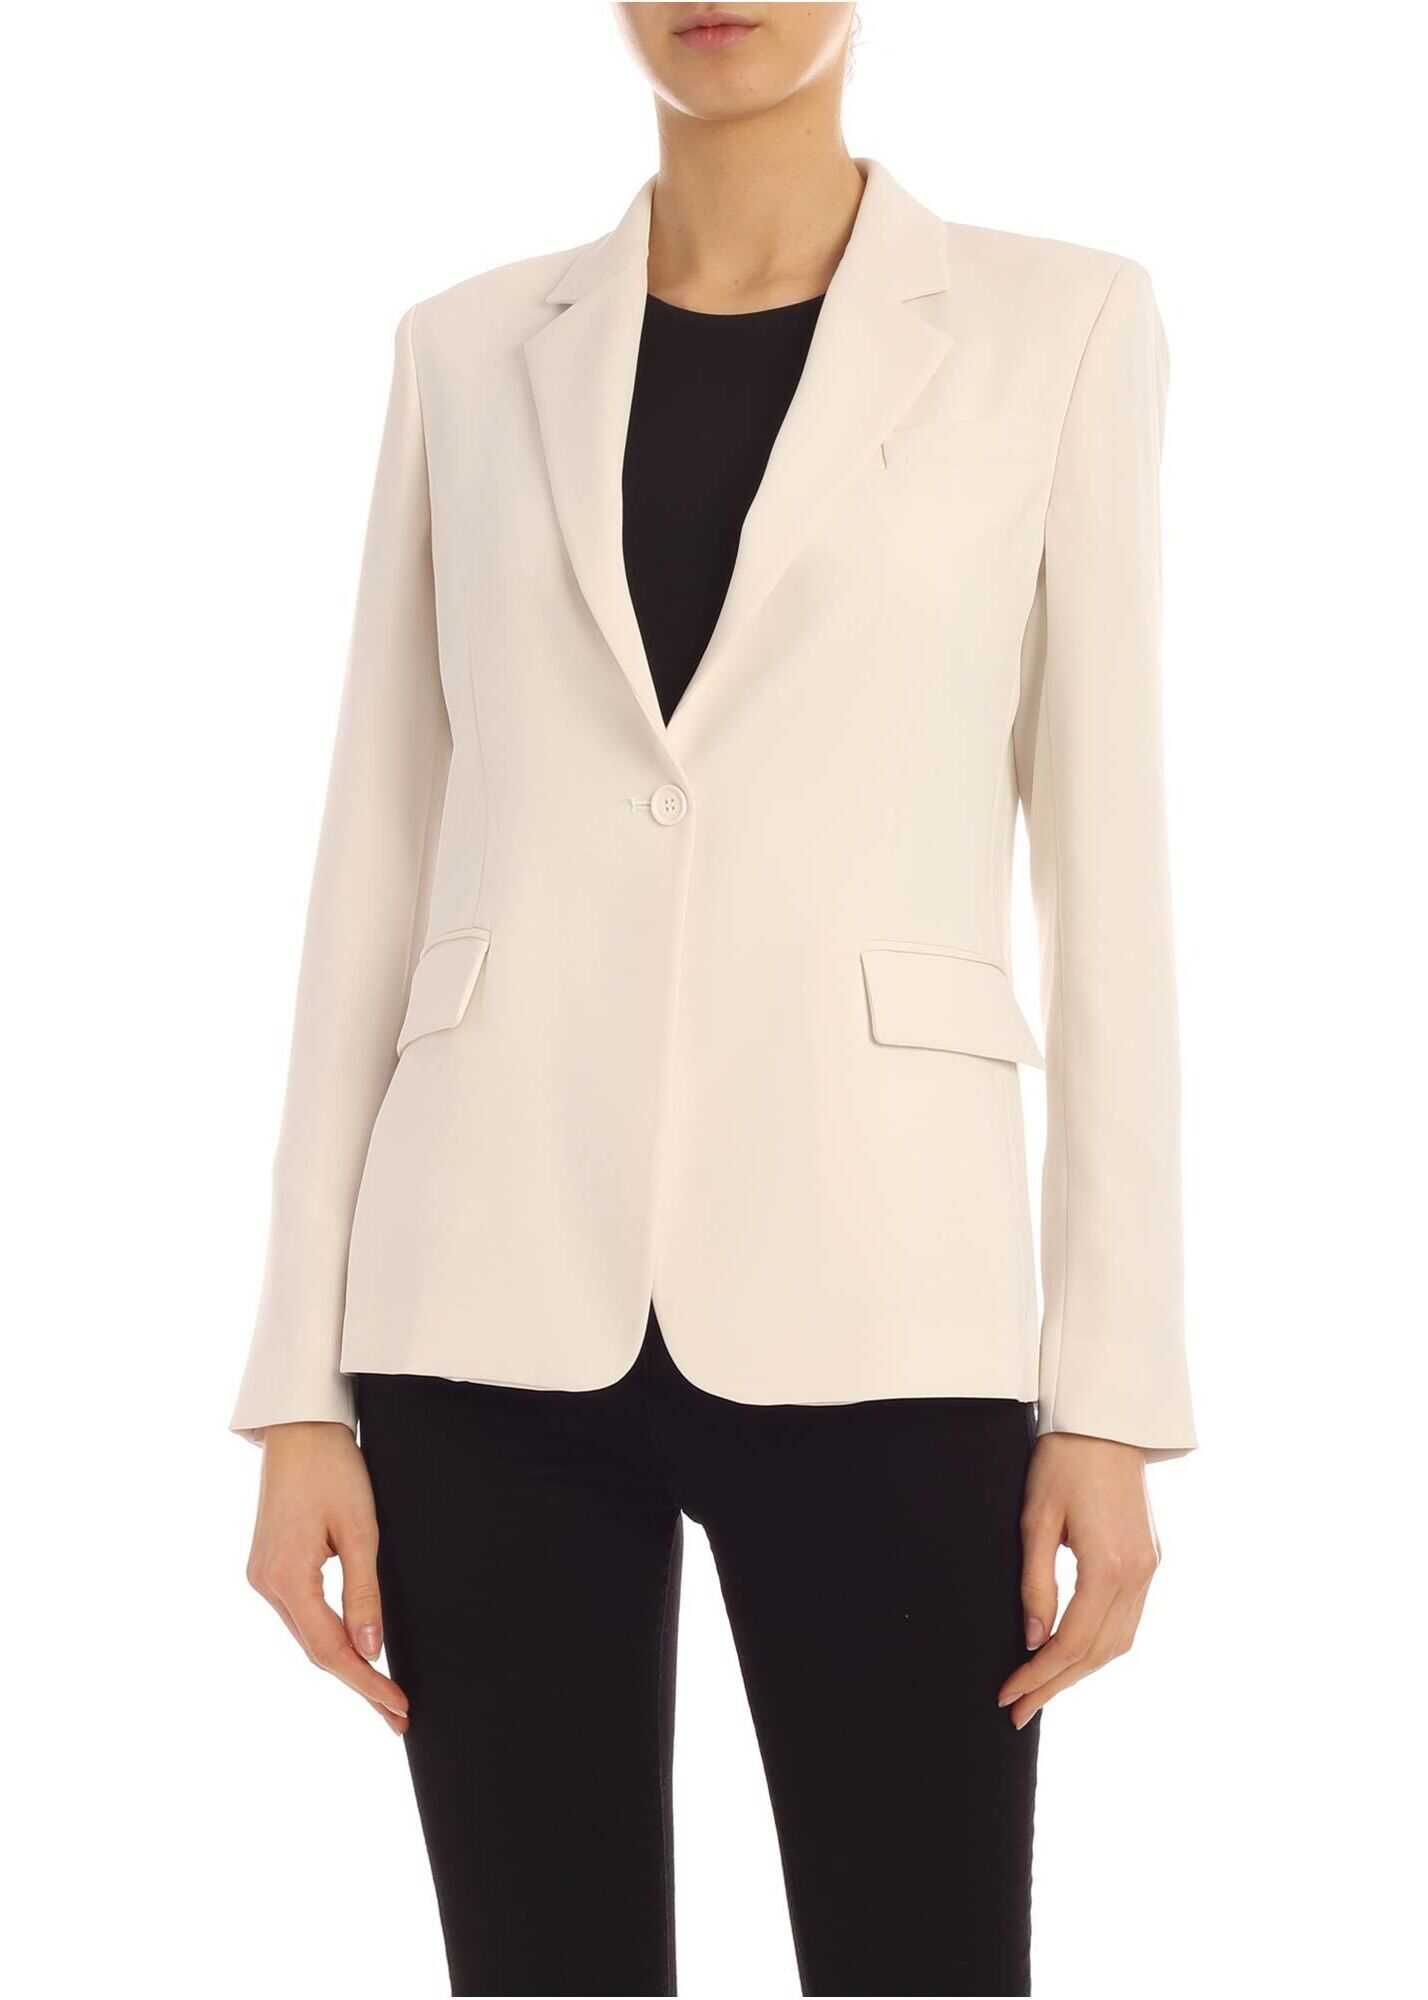 P.A.R.O.S.H. Single Button Jacket In White White